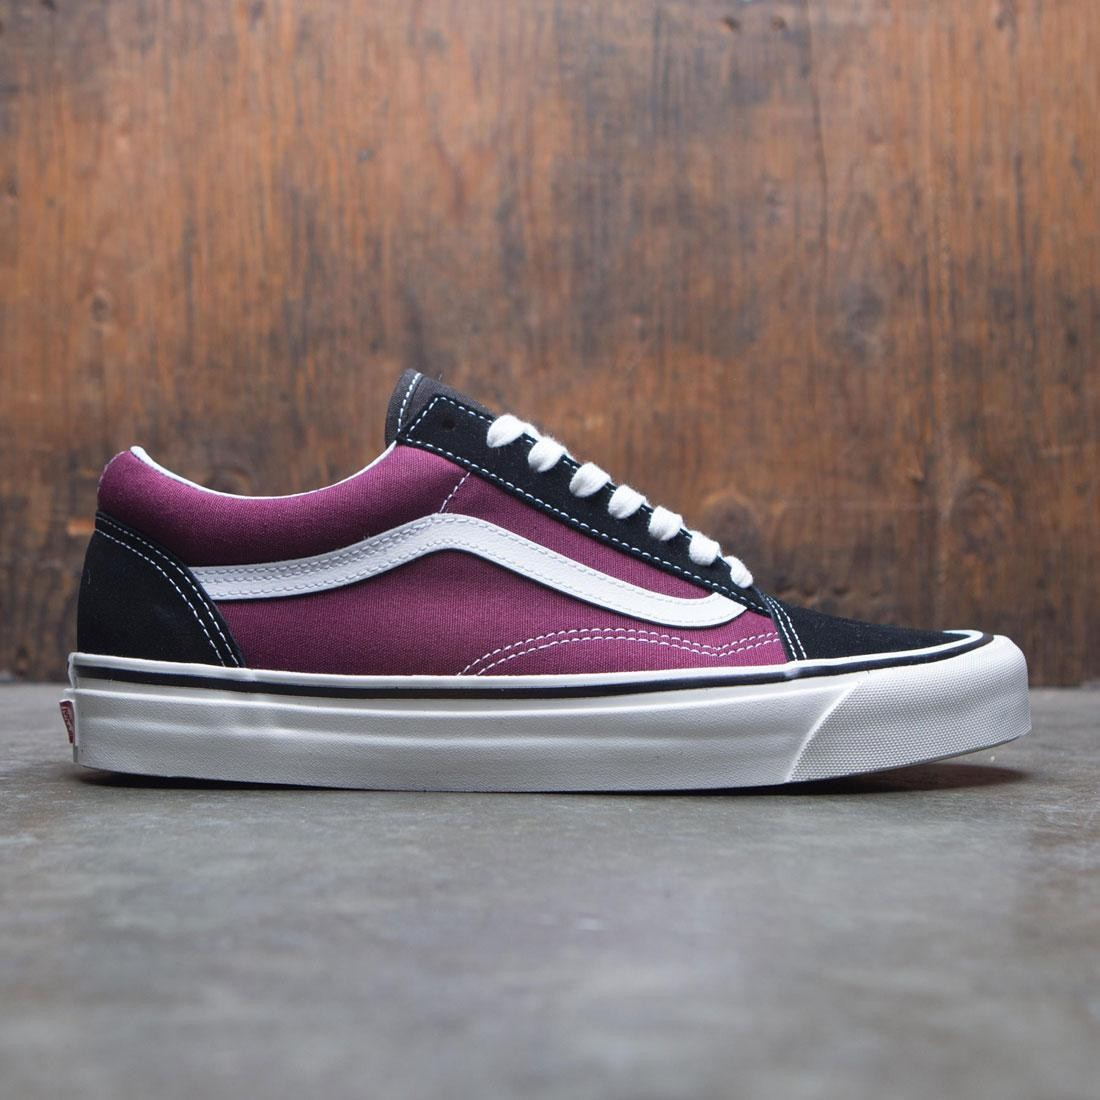 Vans Men Old Skool DX - Anaheim (burgundy / white / black)